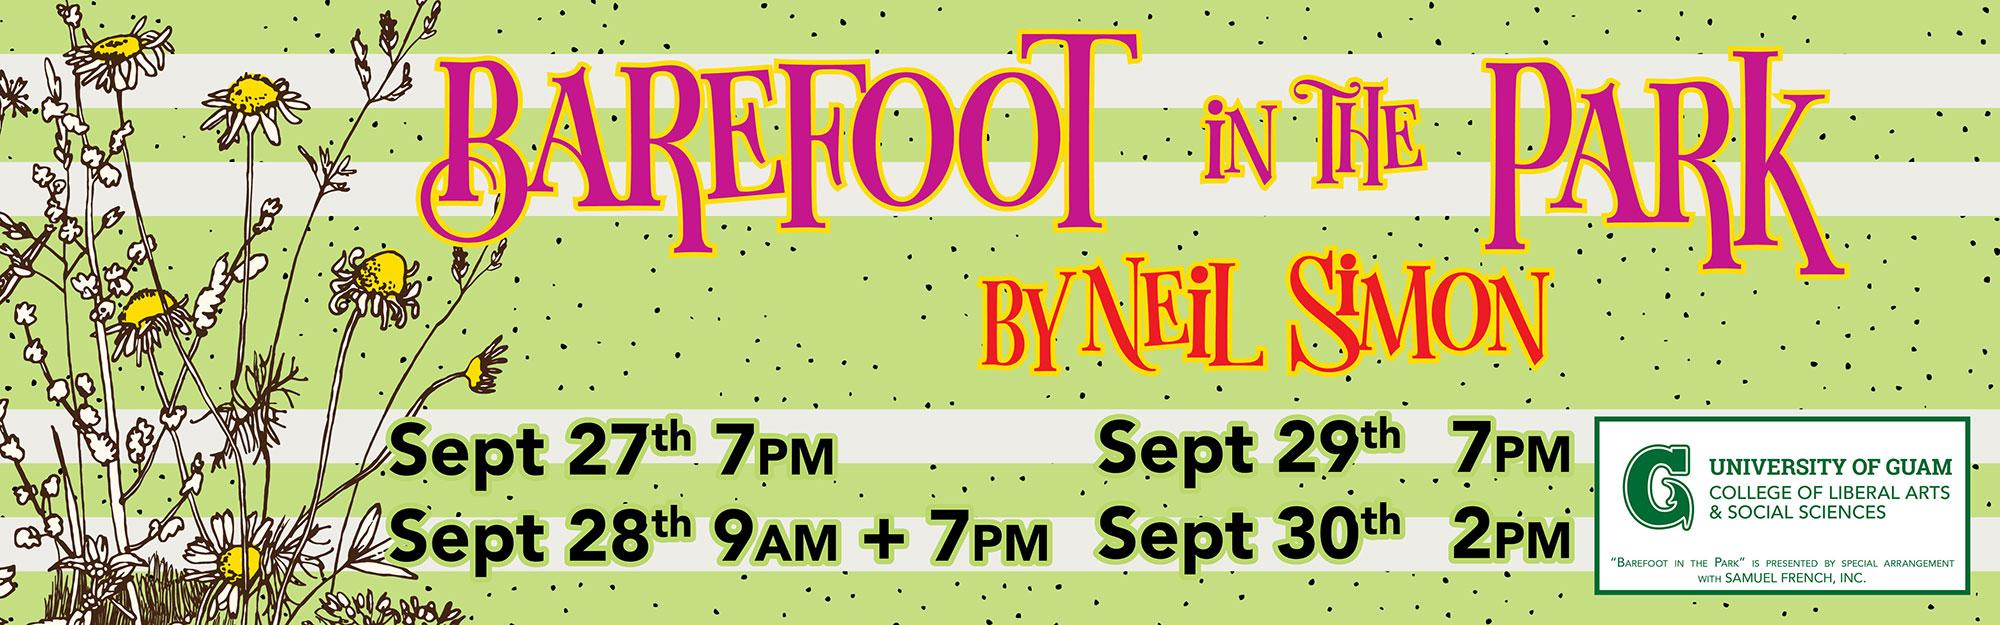 UOG Theatre Presents: Barefoot in the Park